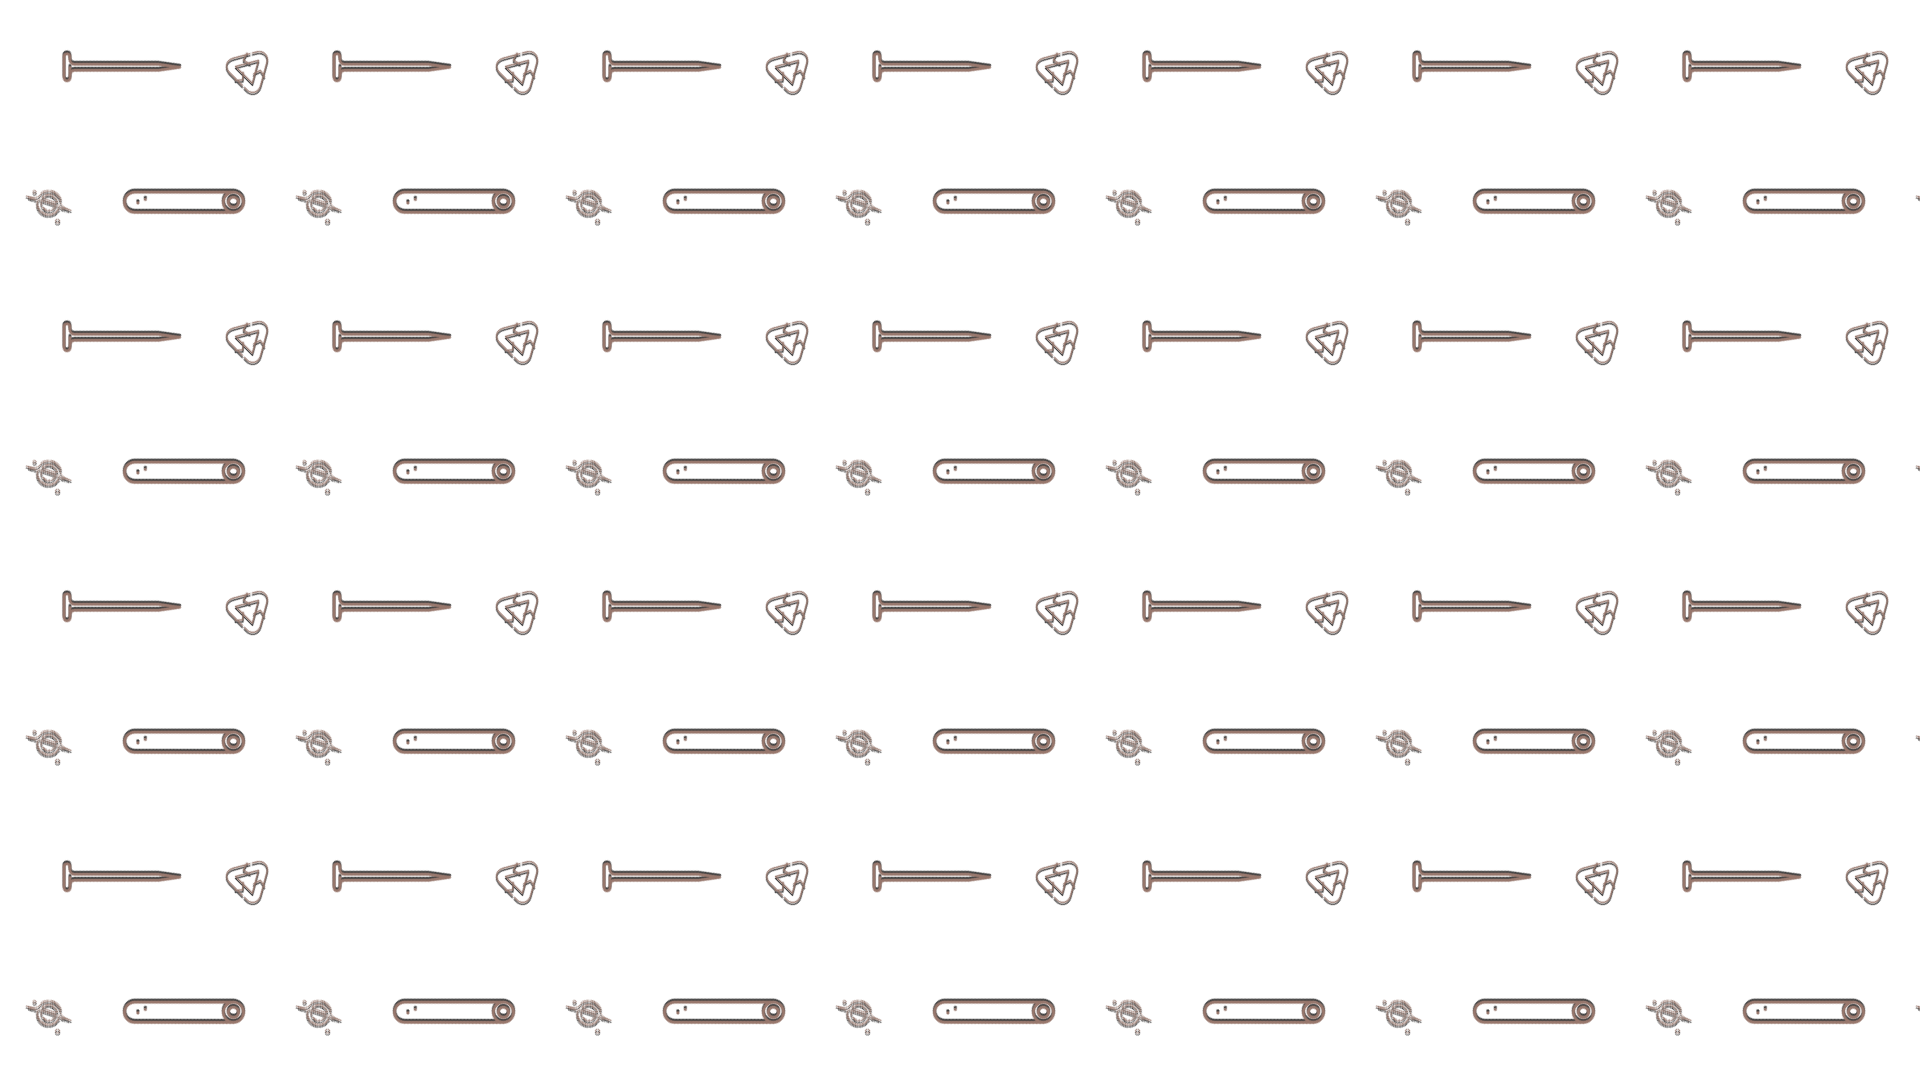 White,                Text,                Line,                Font,                Product,                Material,                Rectangle,                Angle,                Number,                Pattern,                Tool,                Recycling,                Space,                 Free Image